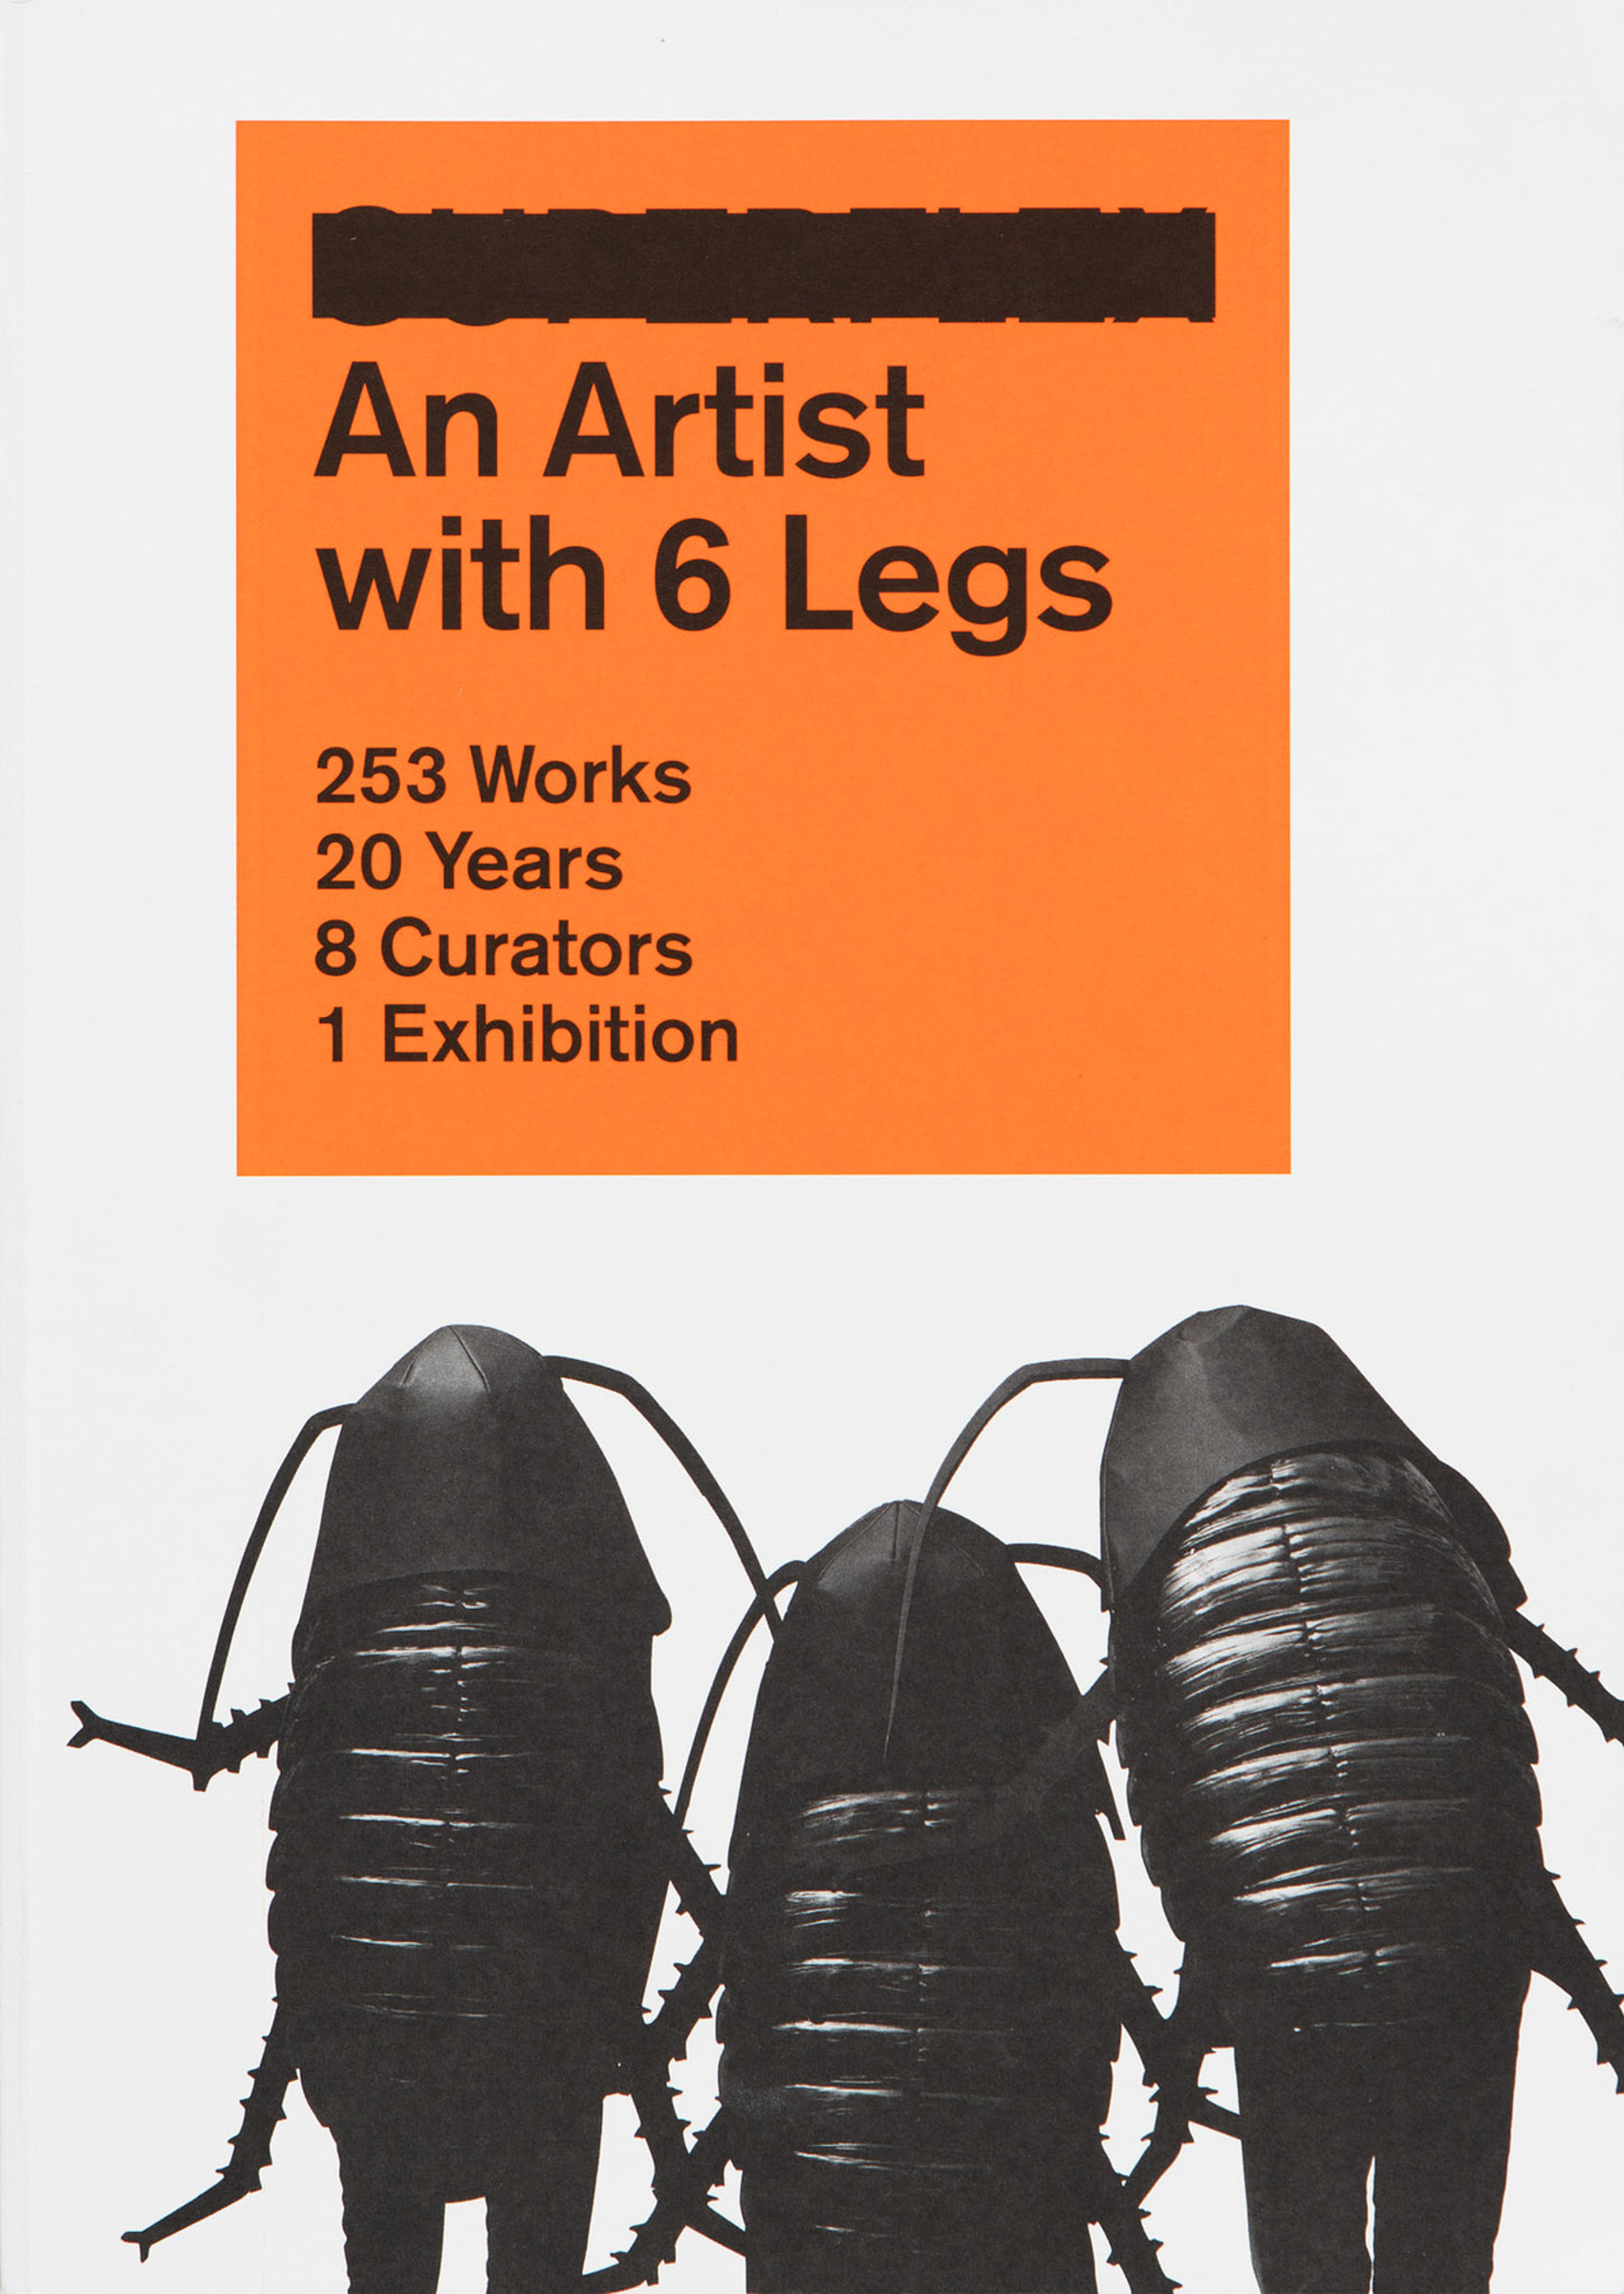 Publication by SUPERFLEX, An Artist with 6 Legs